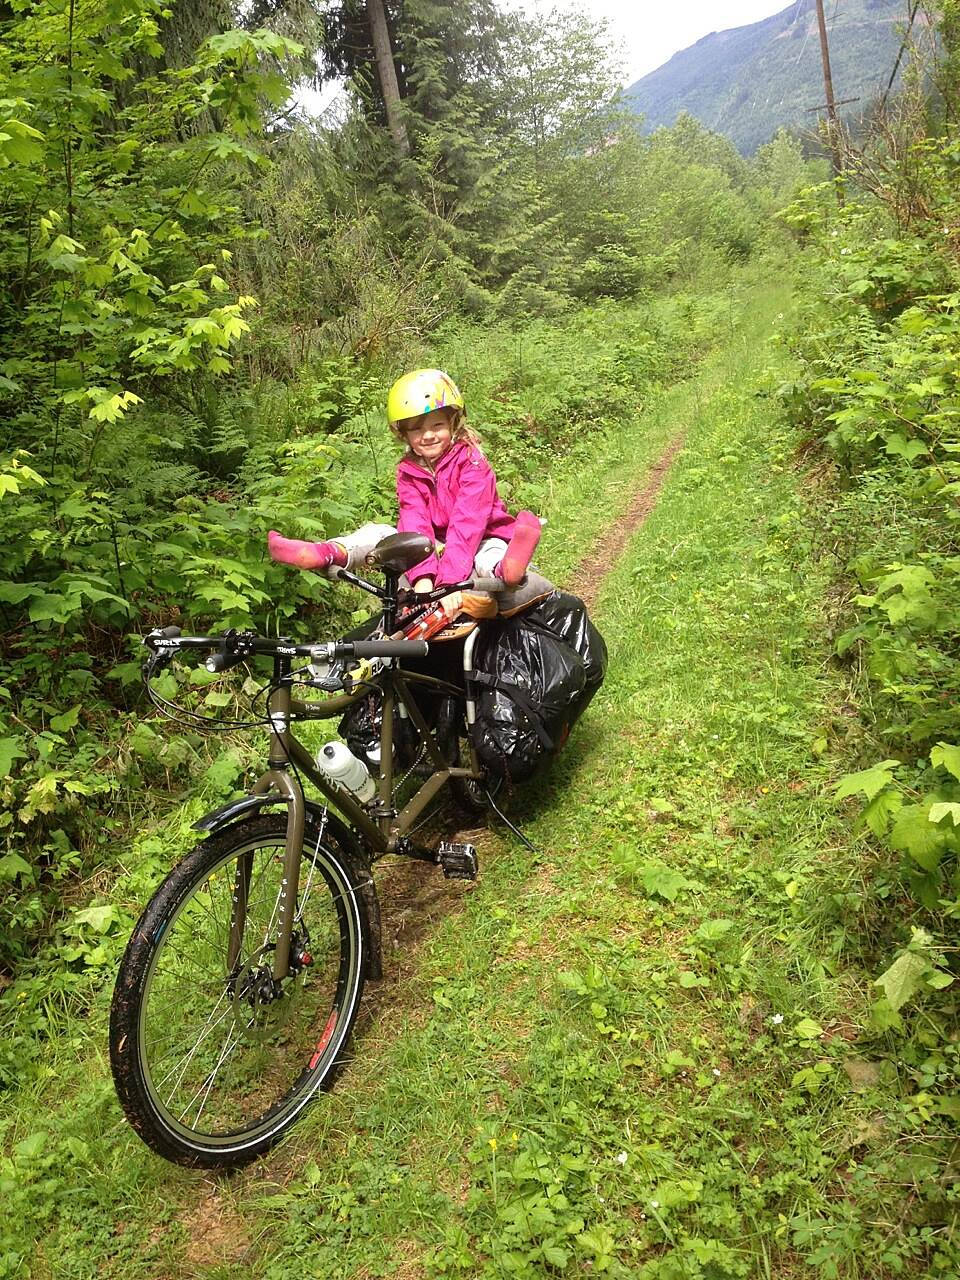 Bay to Baker Trail (Maple Falls to Glacier) Car Free Ski to Sea (with kid) After the washout at Warnick Bluff (which cuts off a mile of excellent rails-to-trails near the river), you can rejoin the trail for this beautiful double-track section. (May 2014)